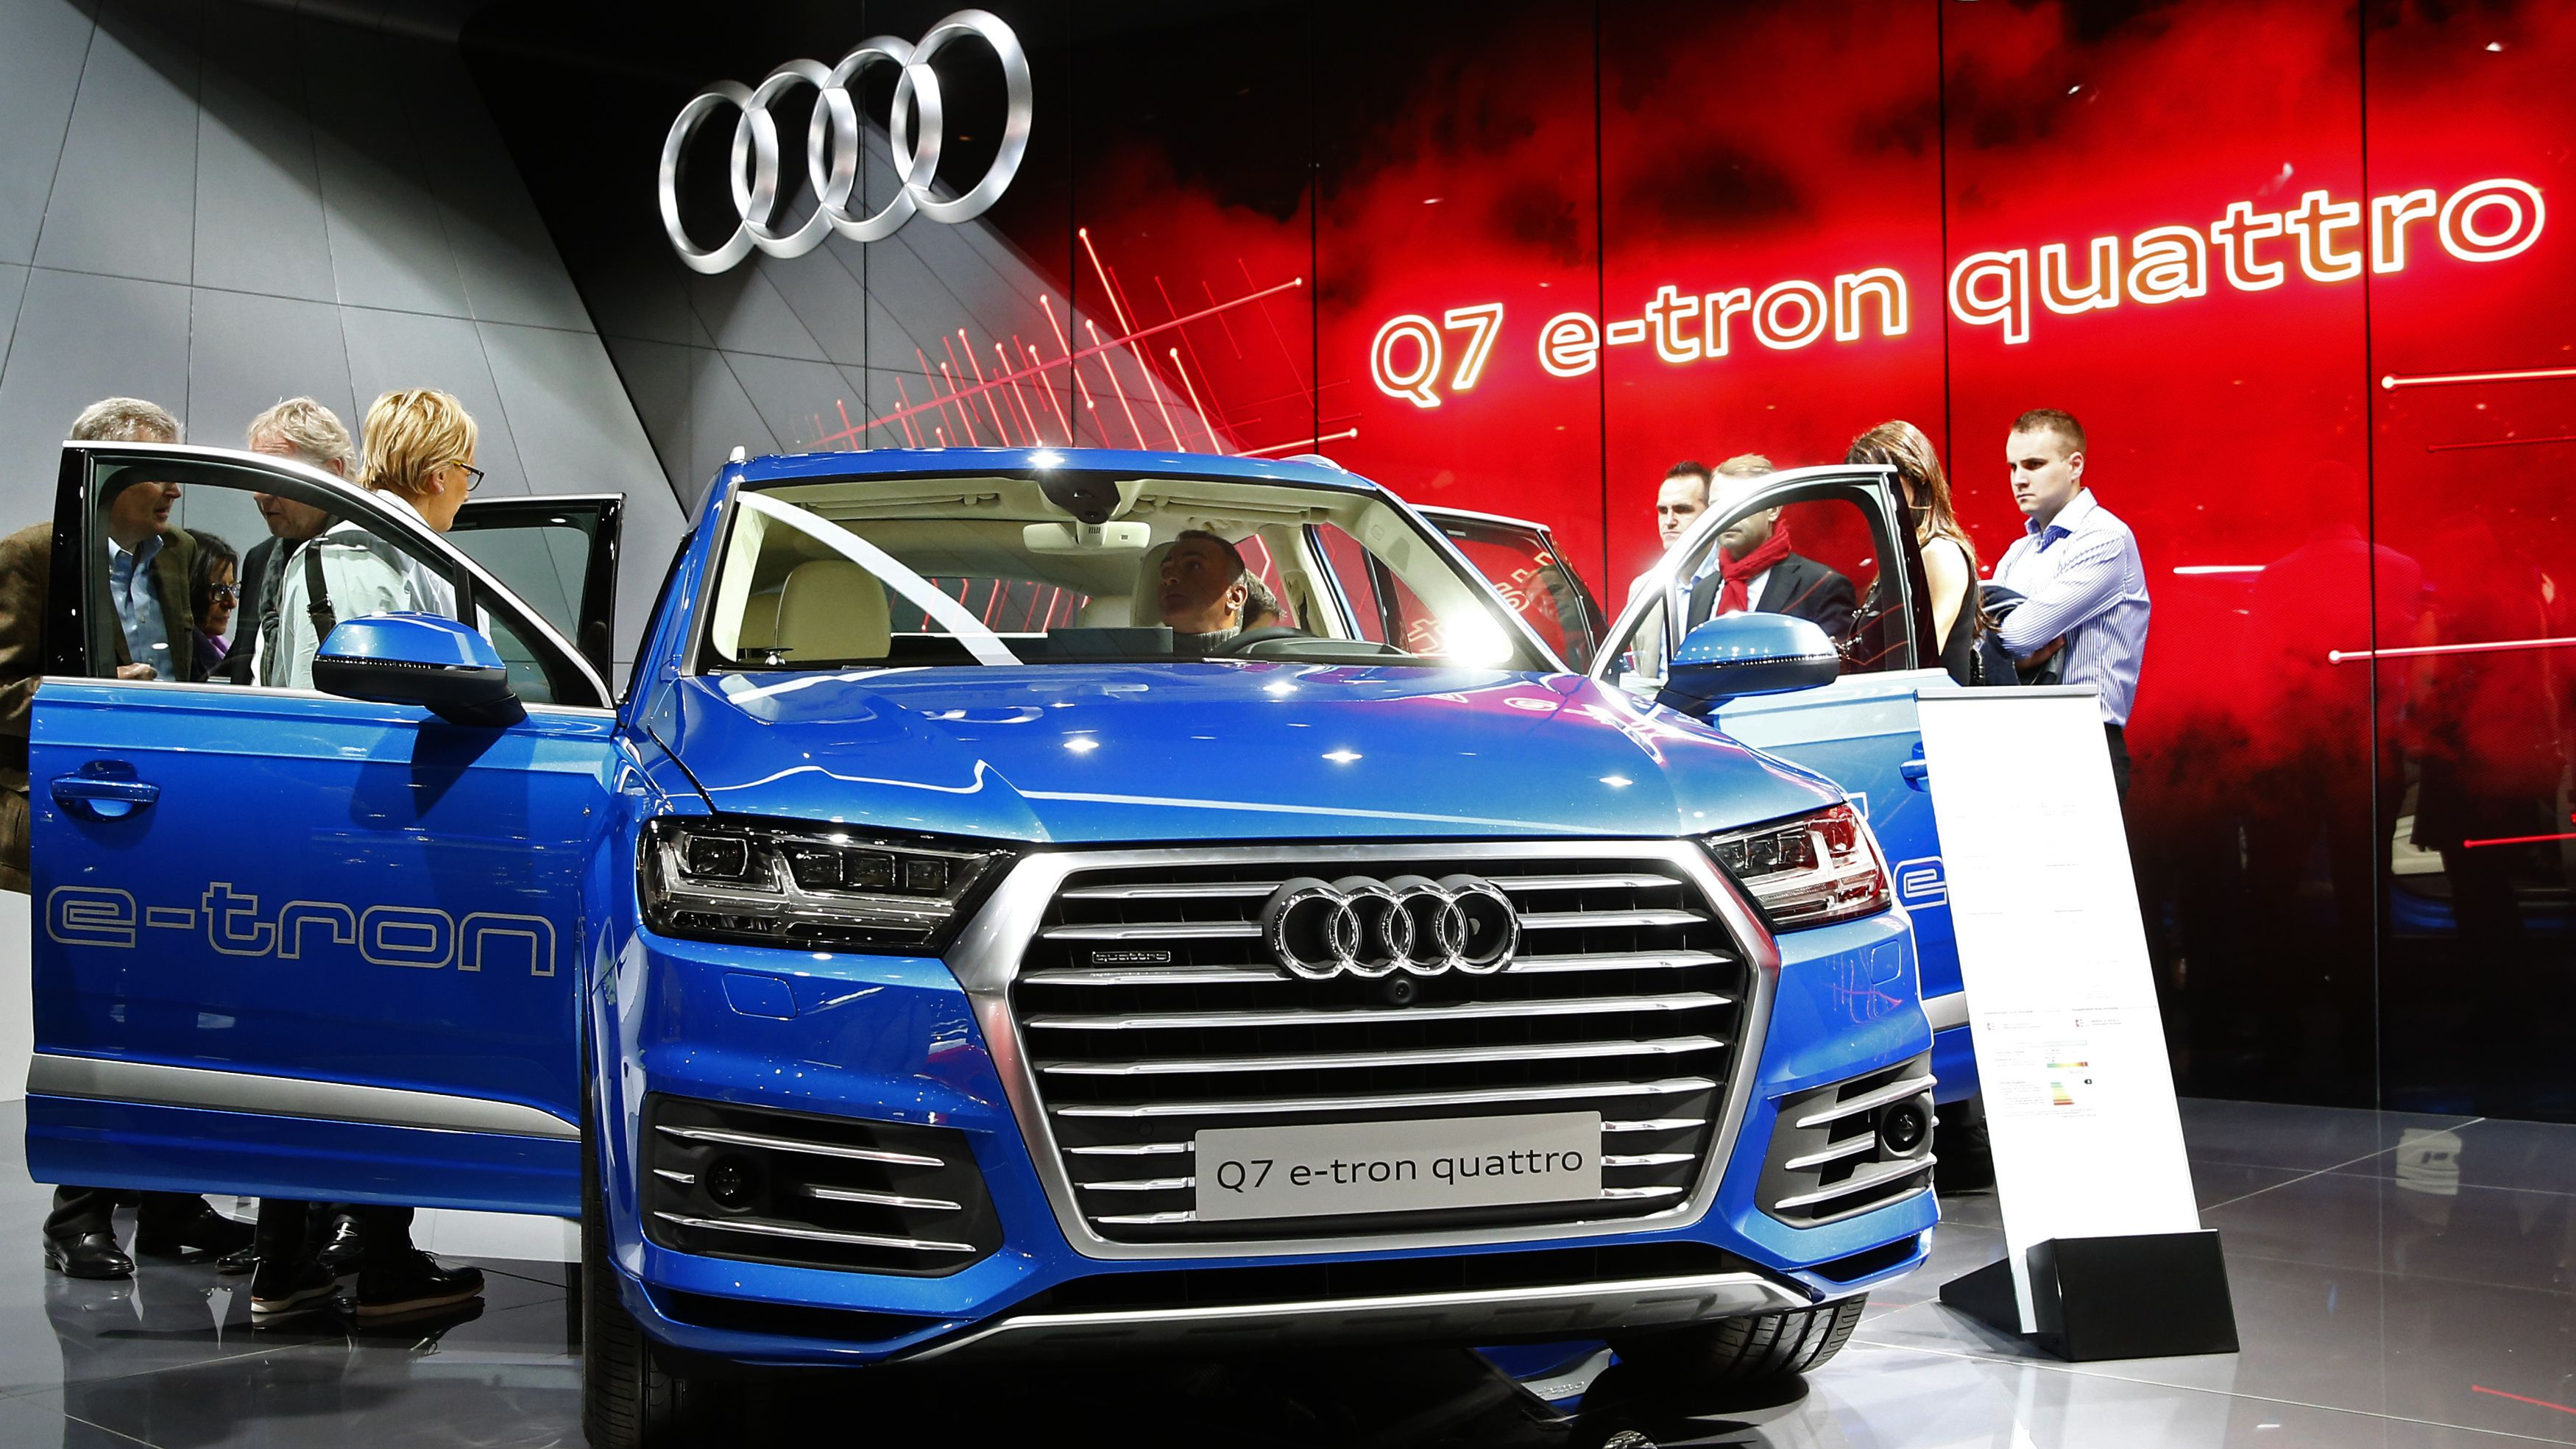 Audi is making fuel from air and water